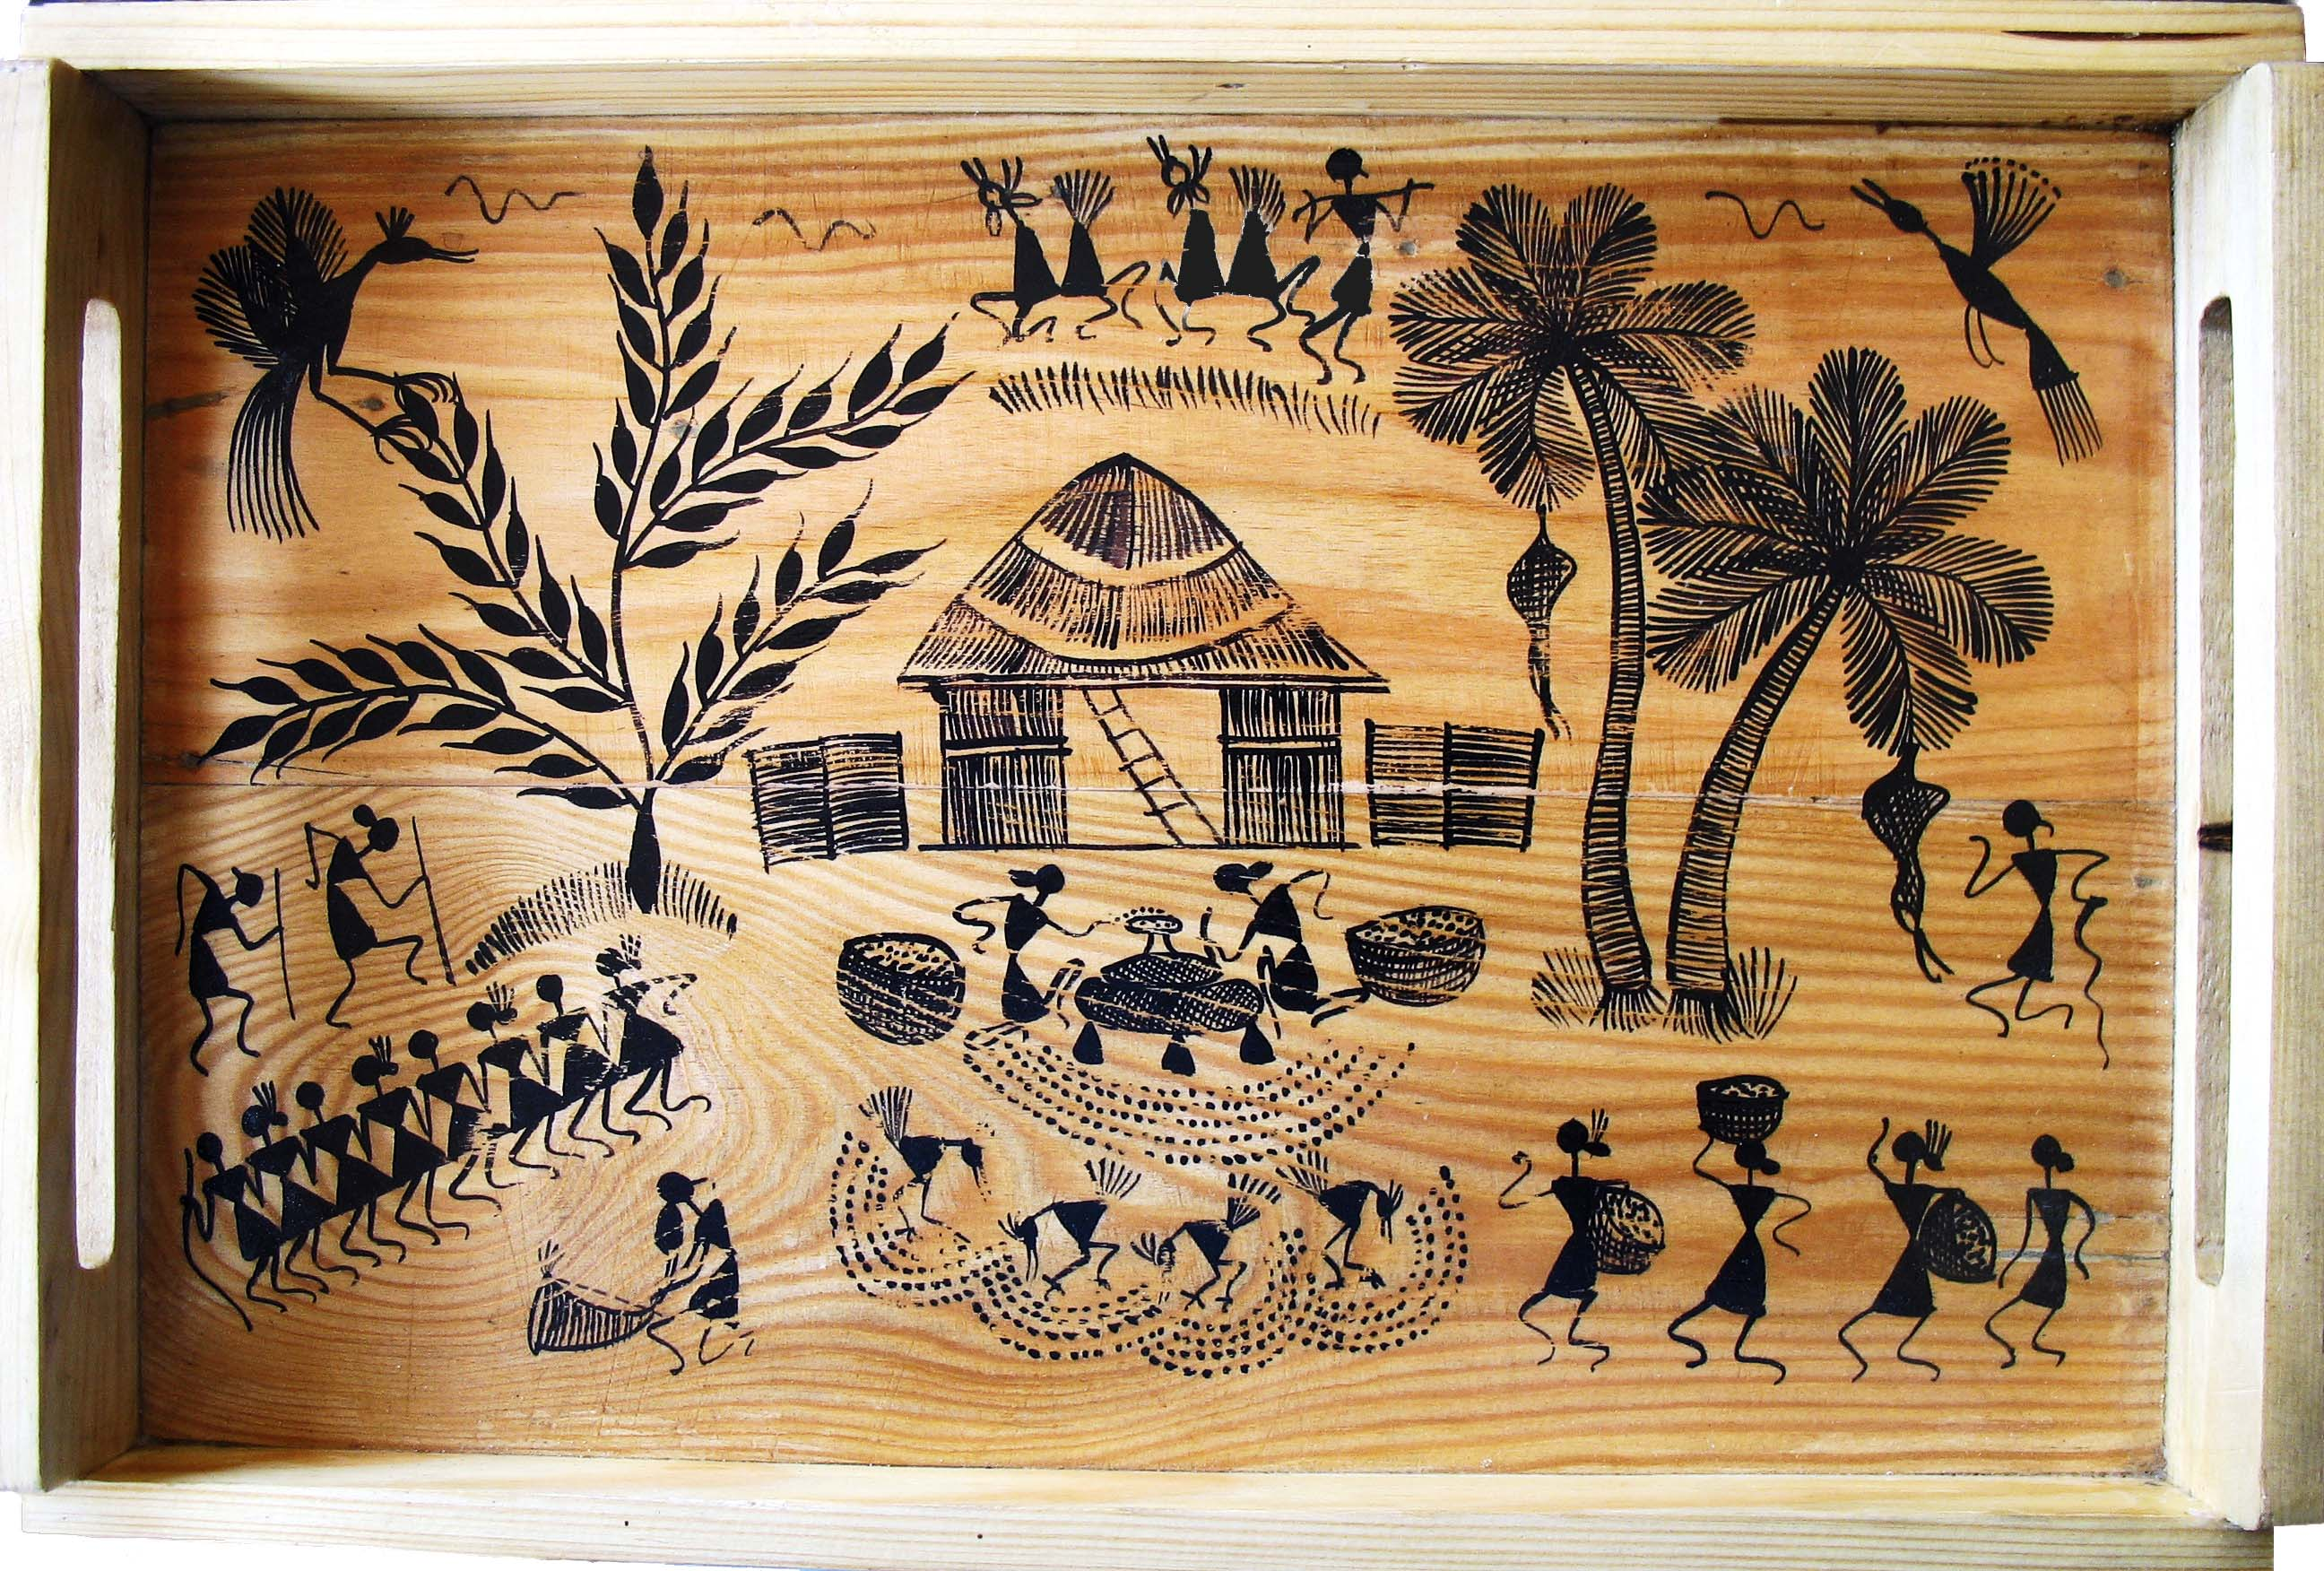 Painted wooden Tray with Warli design in black on a brown background